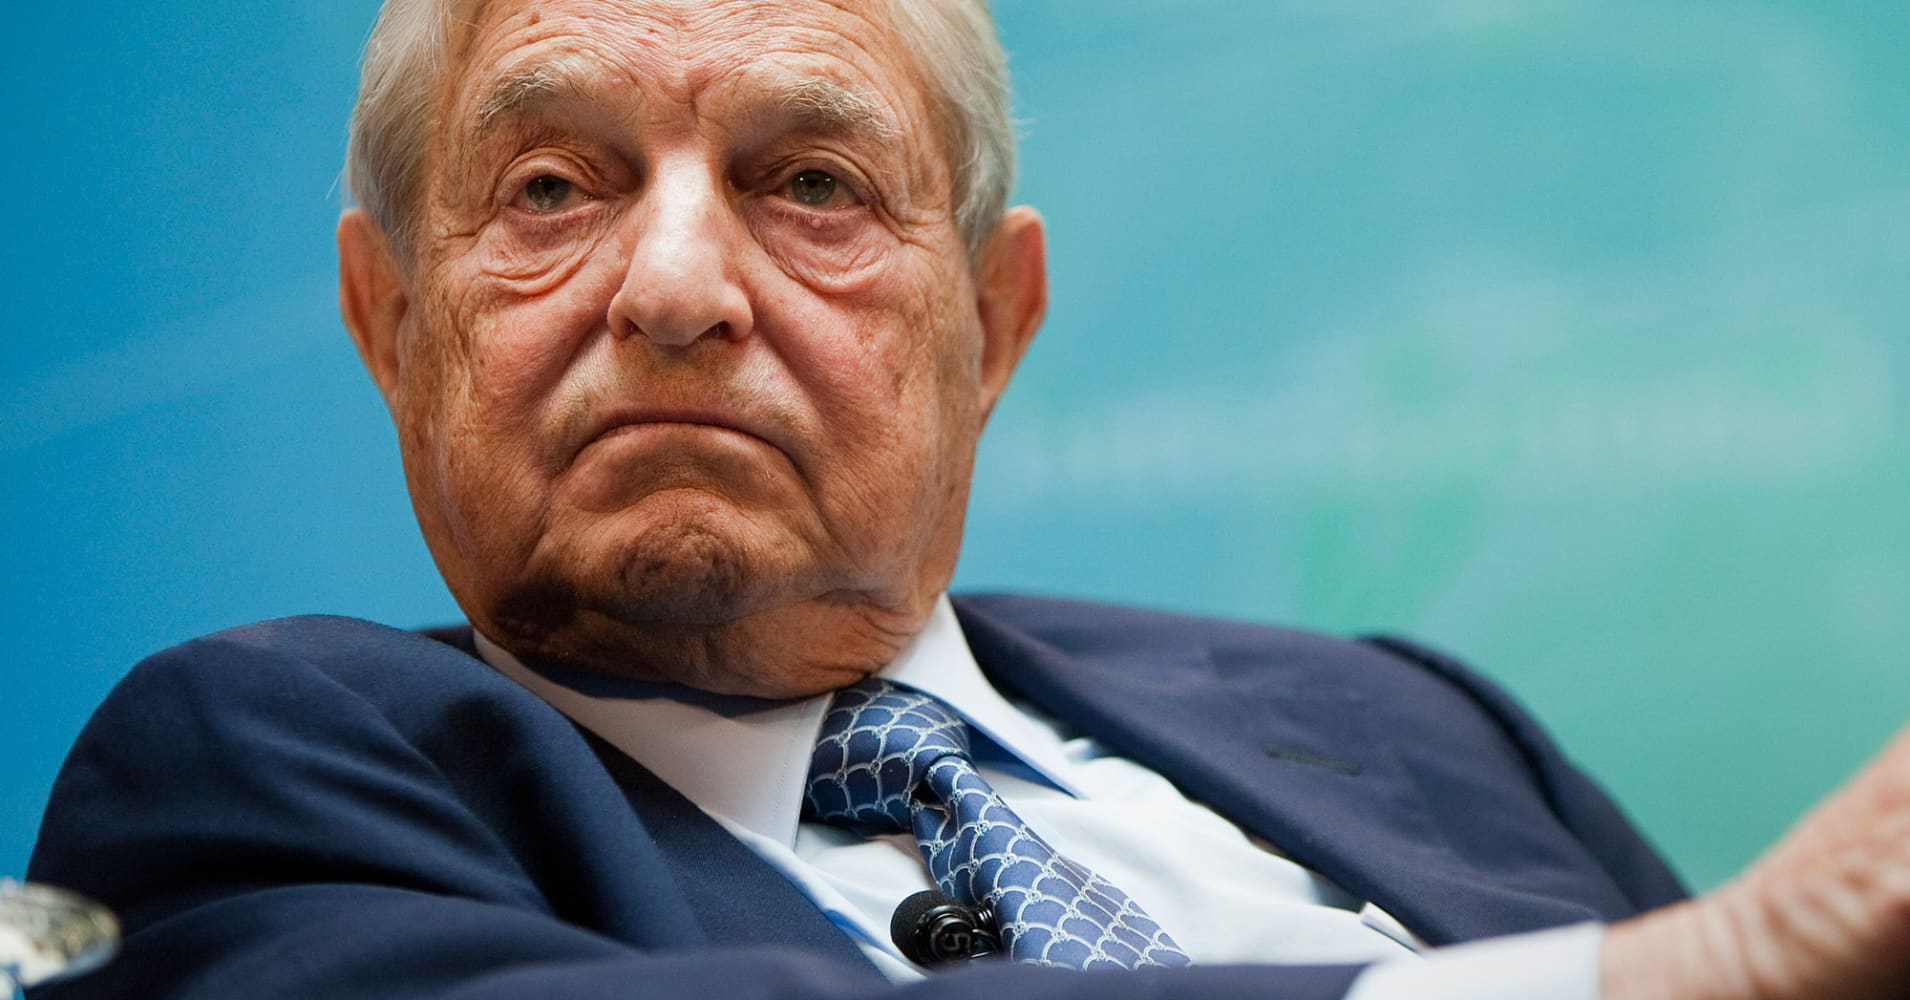 Soros foundation says minister's accusations about Hungary pullout are 'nonsense'